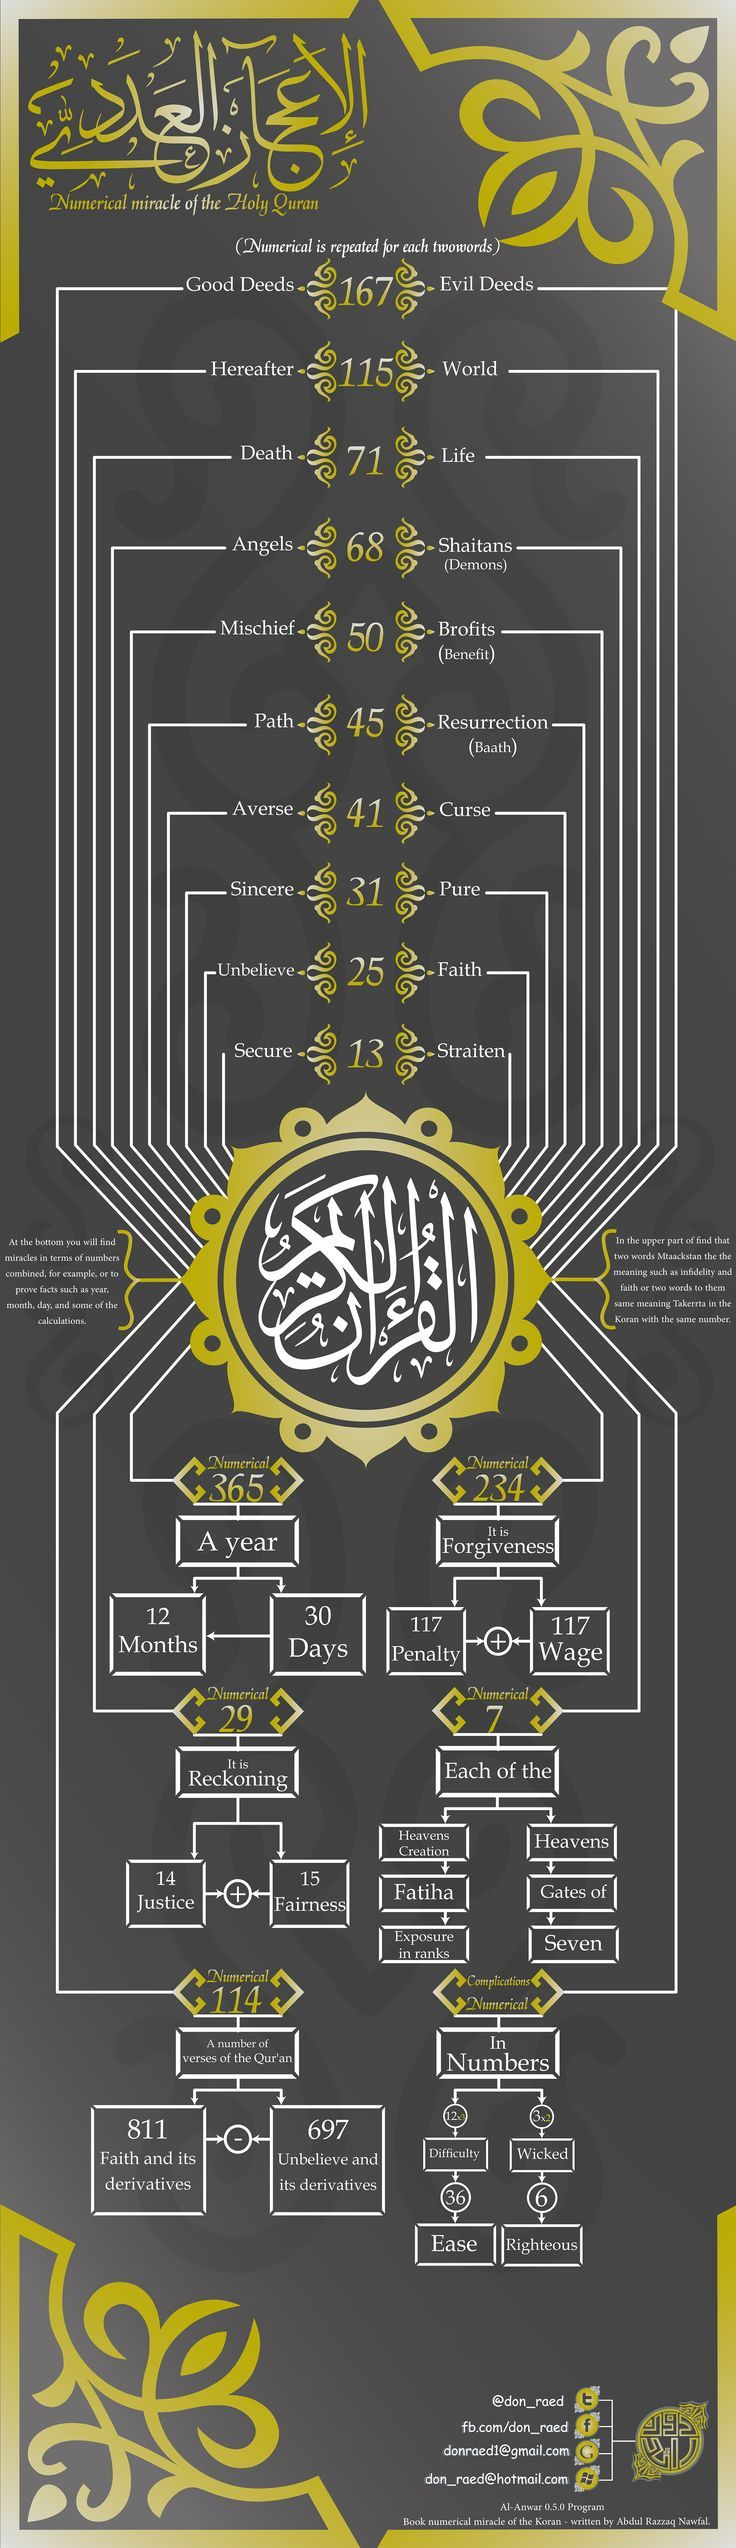 Numerical Maricle of Holy Quran.